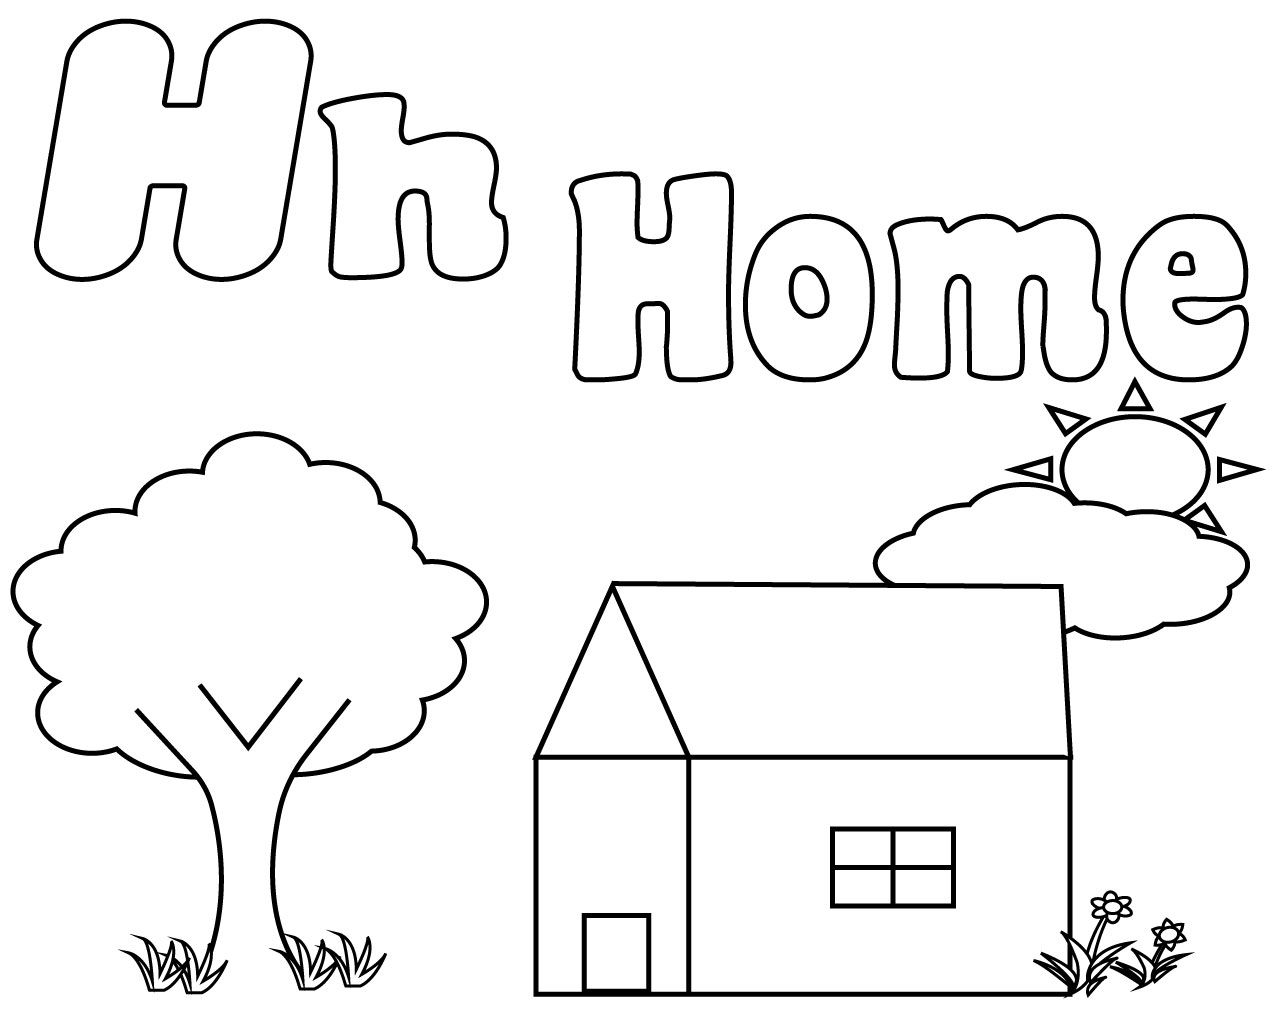 Free Printable Letter H Coloring Pages For Kids